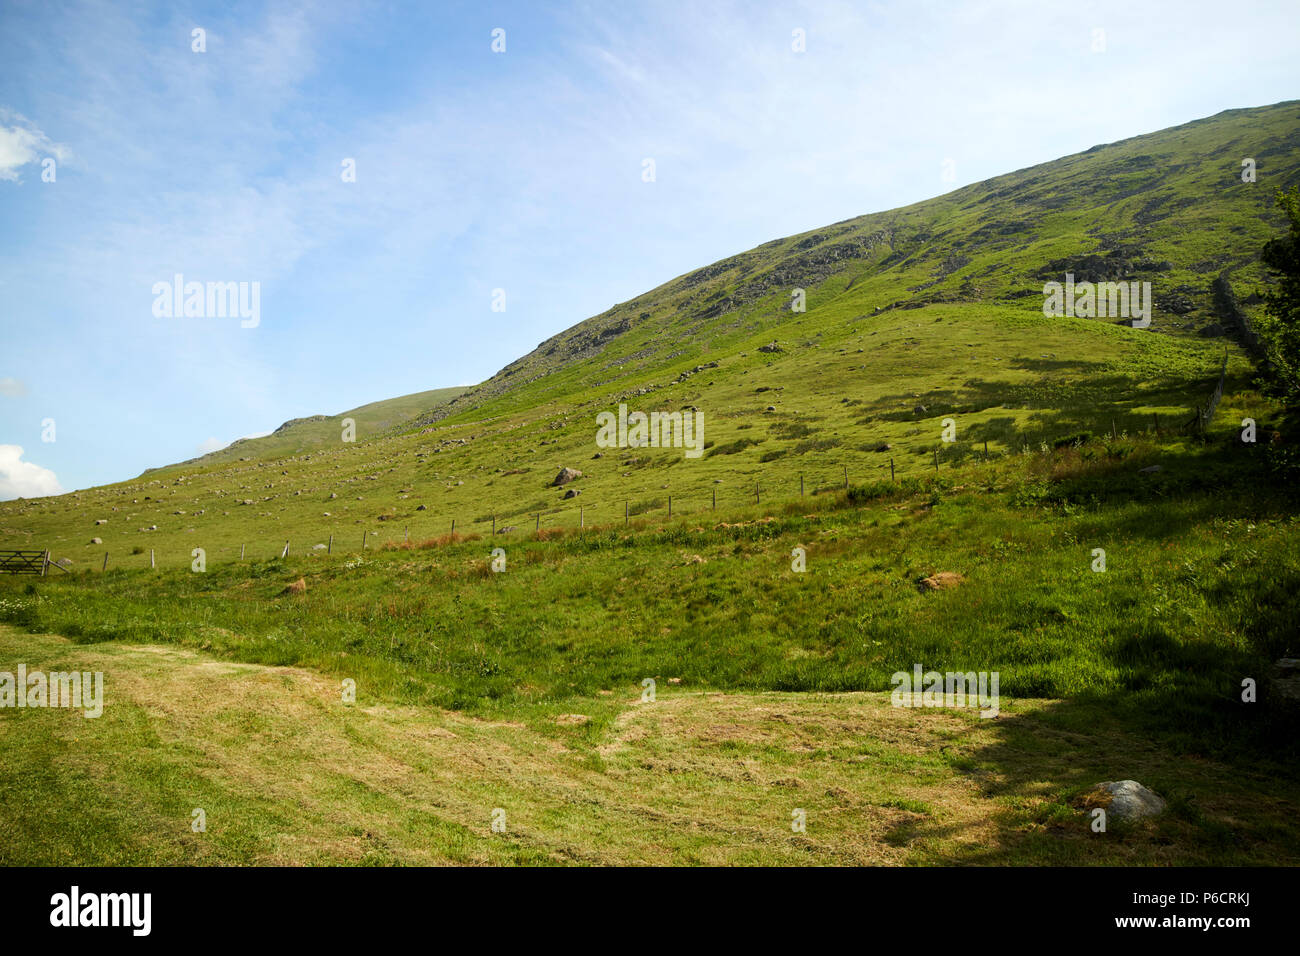 seat sandal fell fields and hills dunmail raise in the lake district cumbria england uk - Stock Image